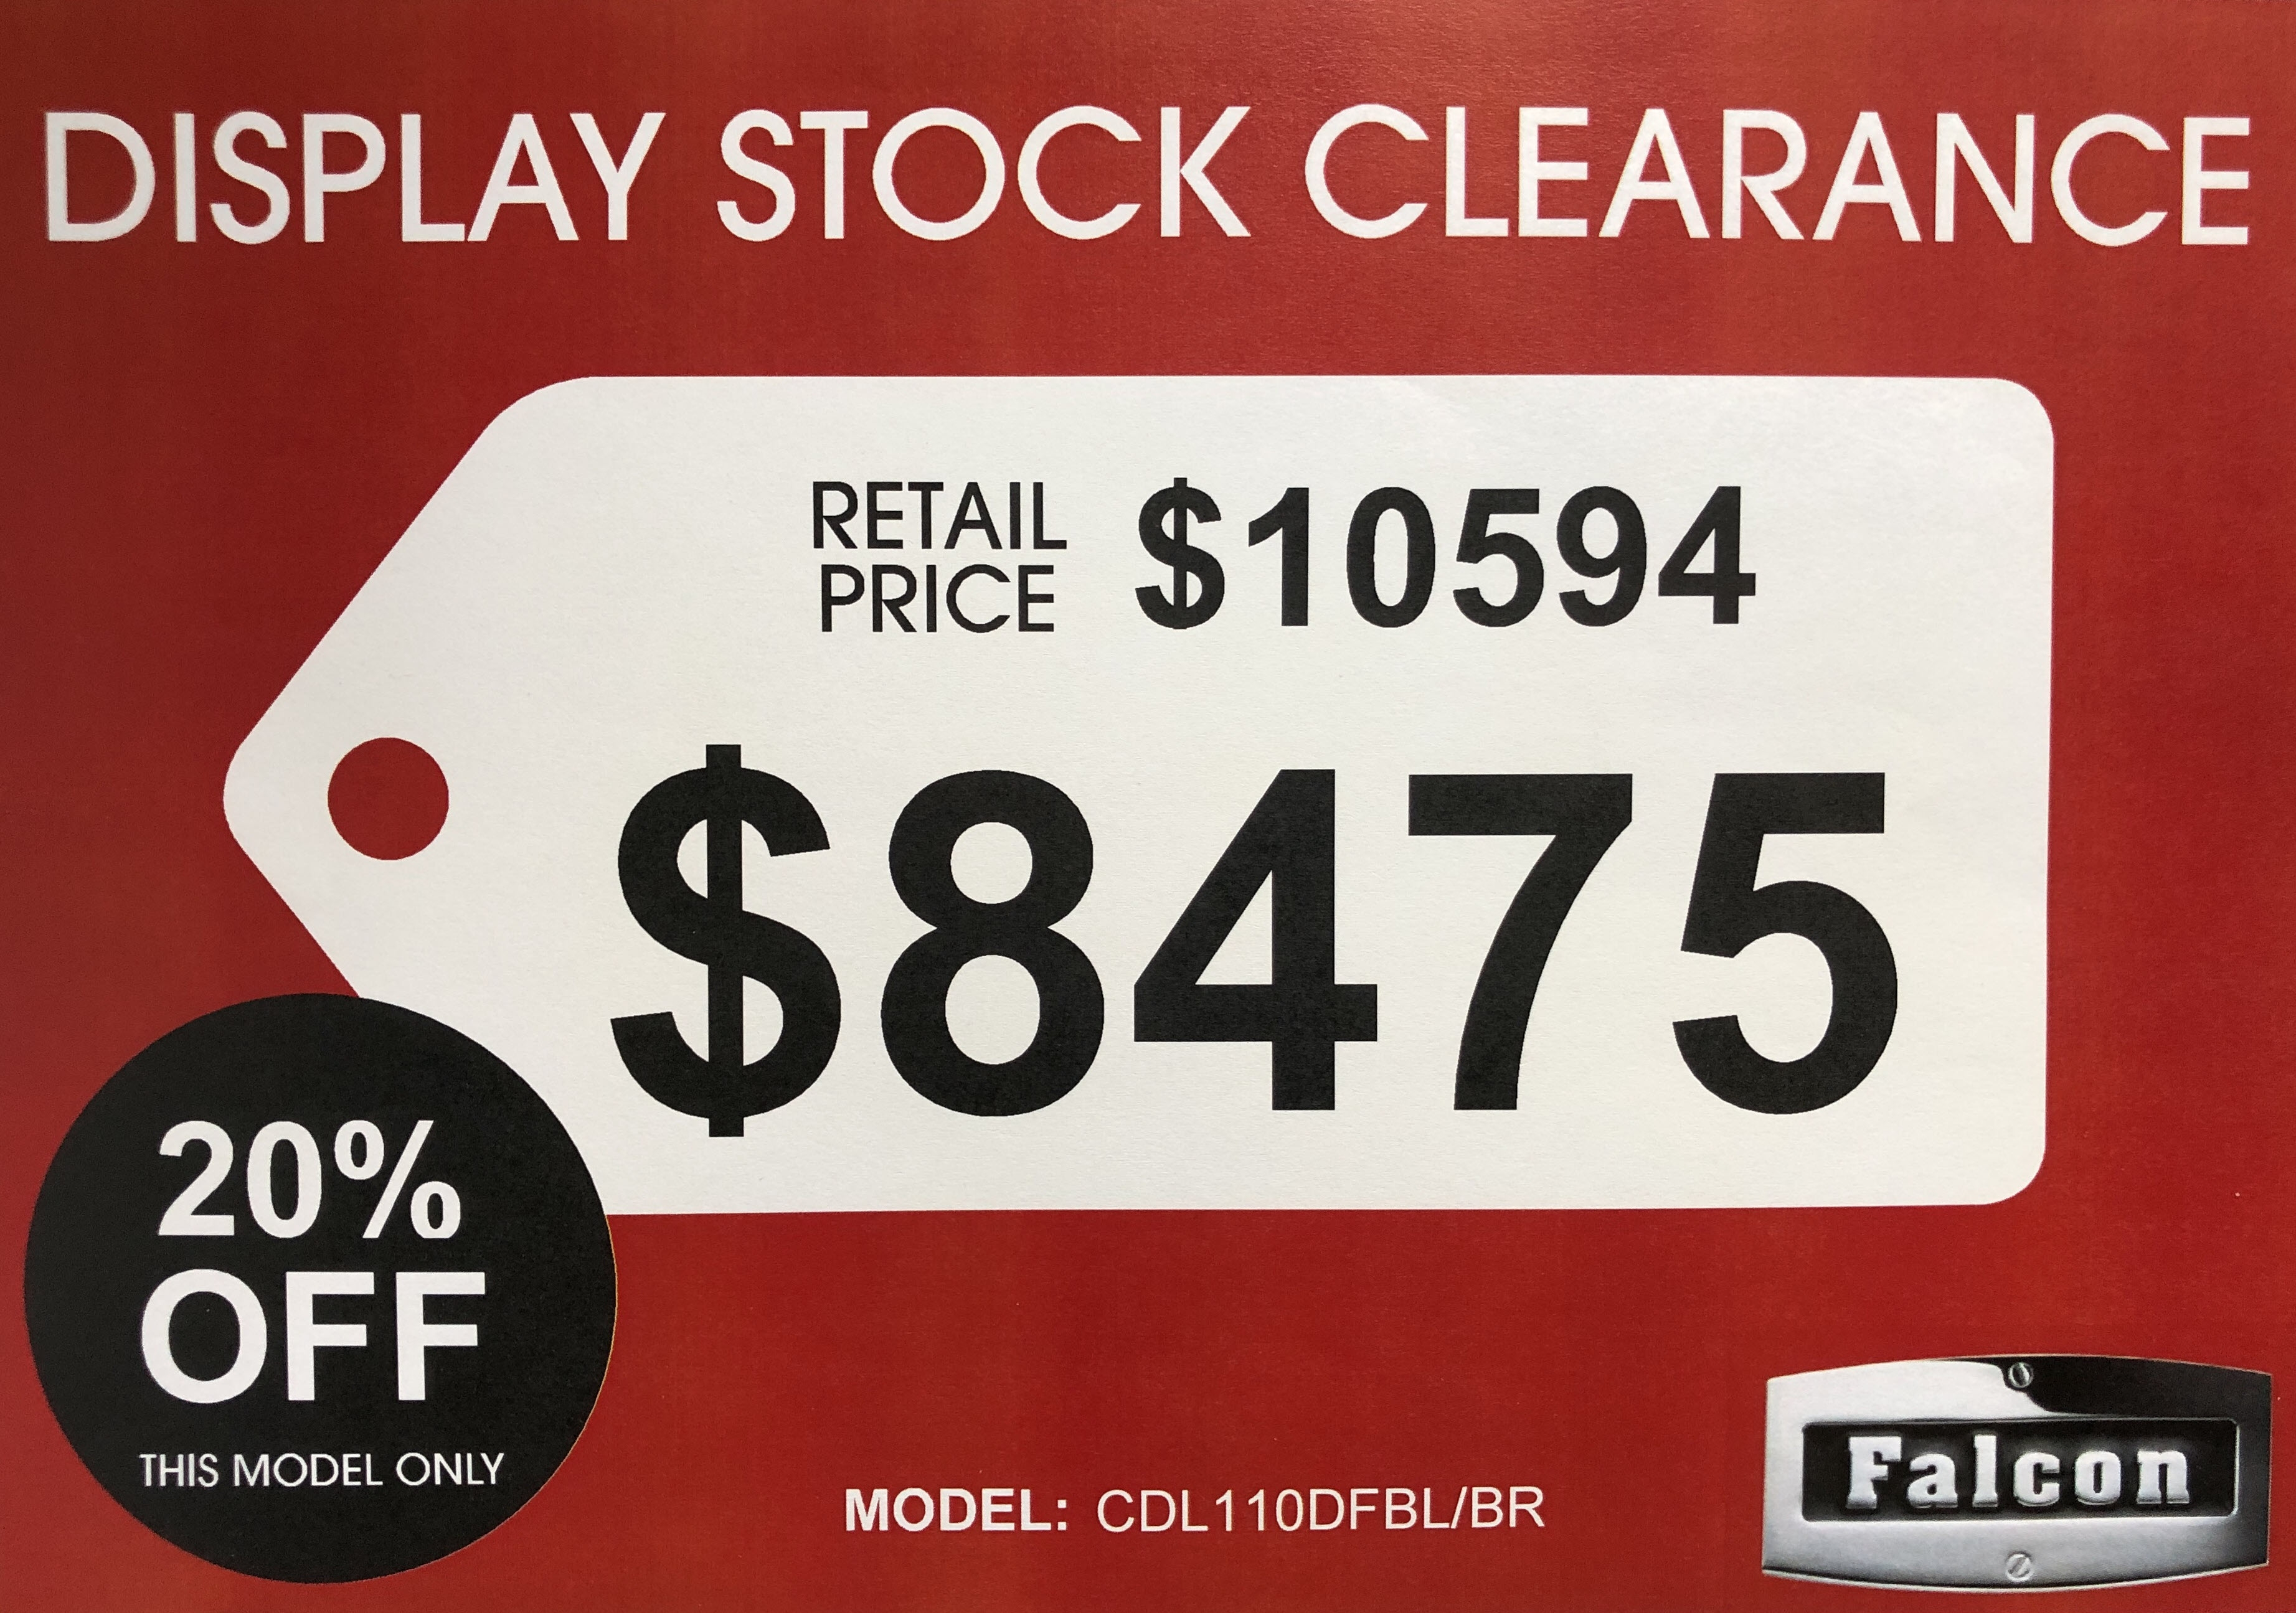 Falcon Clearance CDL110DFBL/BR is available Instore Display Clearance Stock $8475 (1 Only)